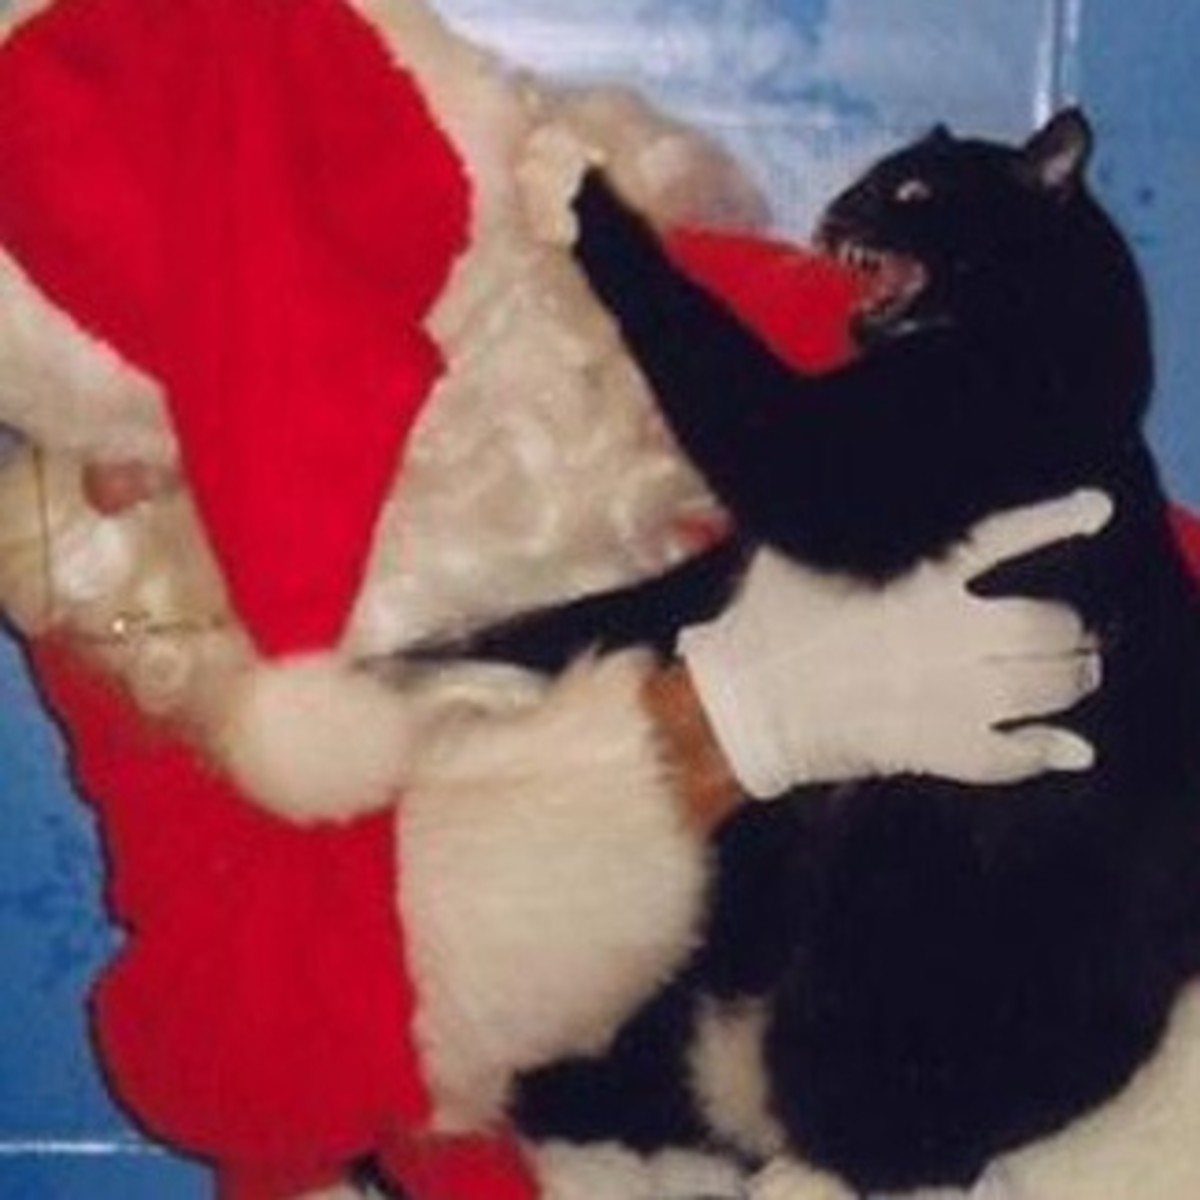 Cat attacks Santa Claus!